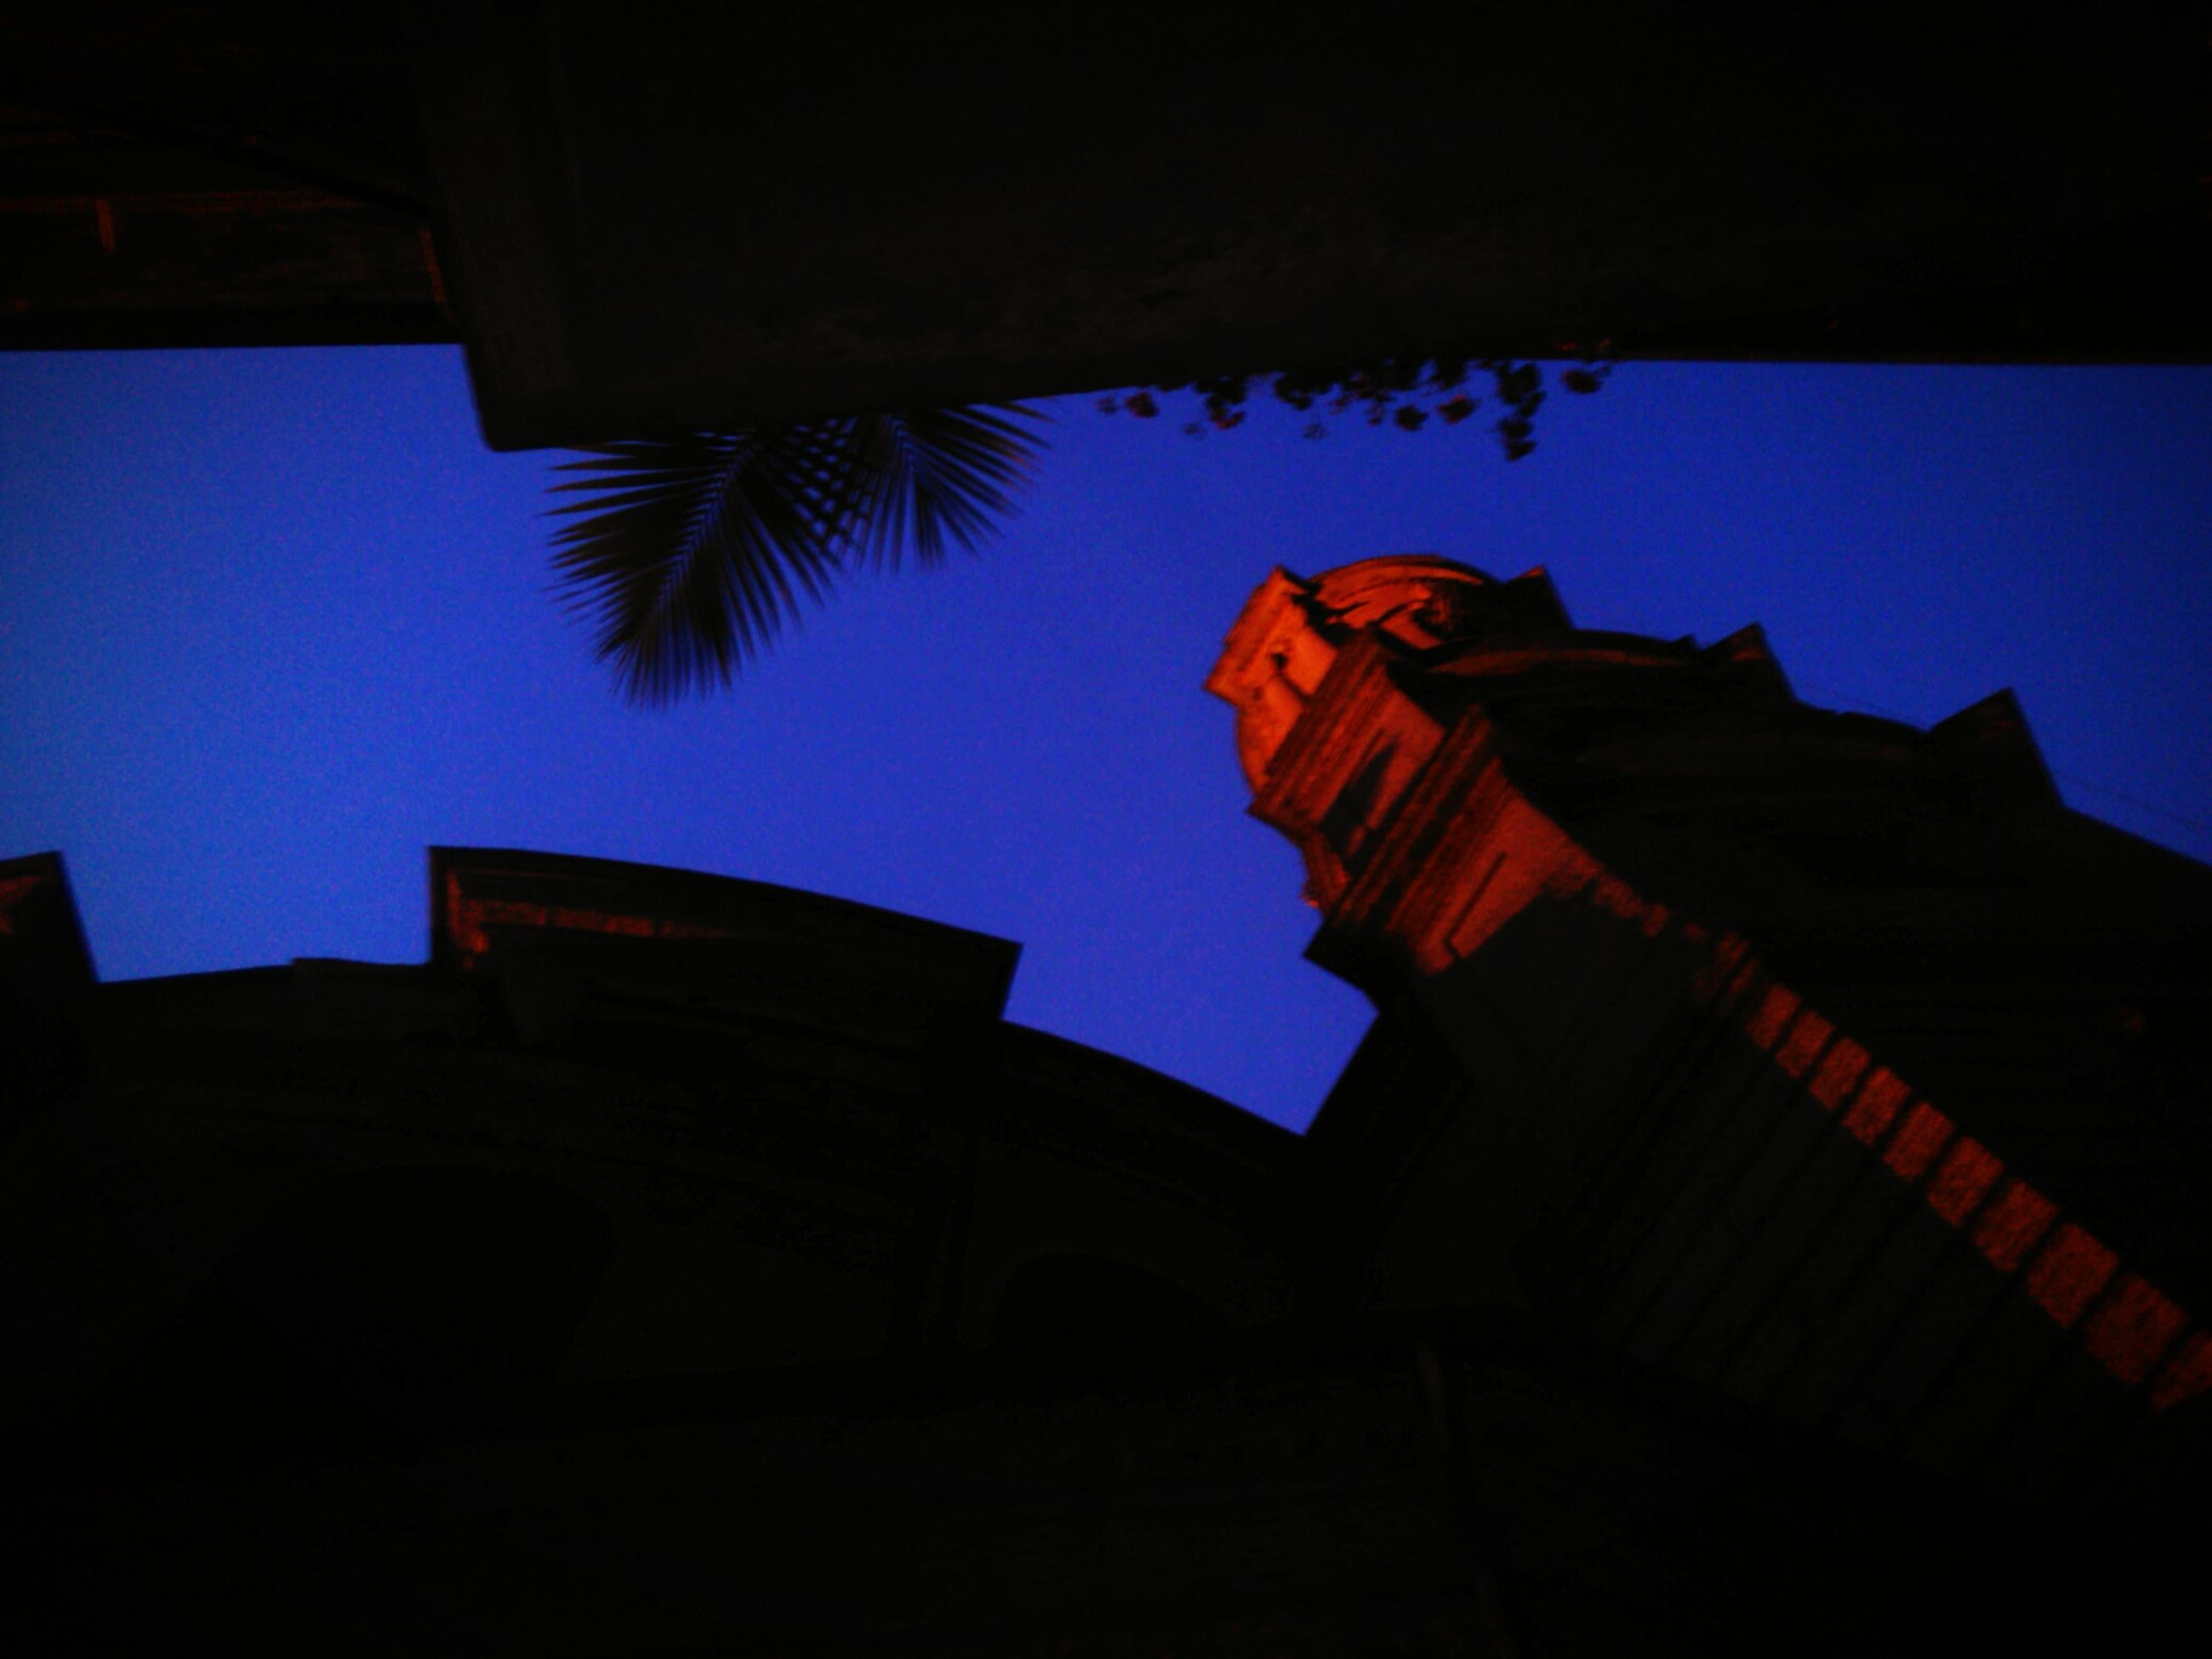 architecture, built structure, low angle view, building exterior, blue, clear sky, silhouette, place of worship, religion, sky, history, church, spirituality, copy space, dusk, outdoors, sunlight, building, no people